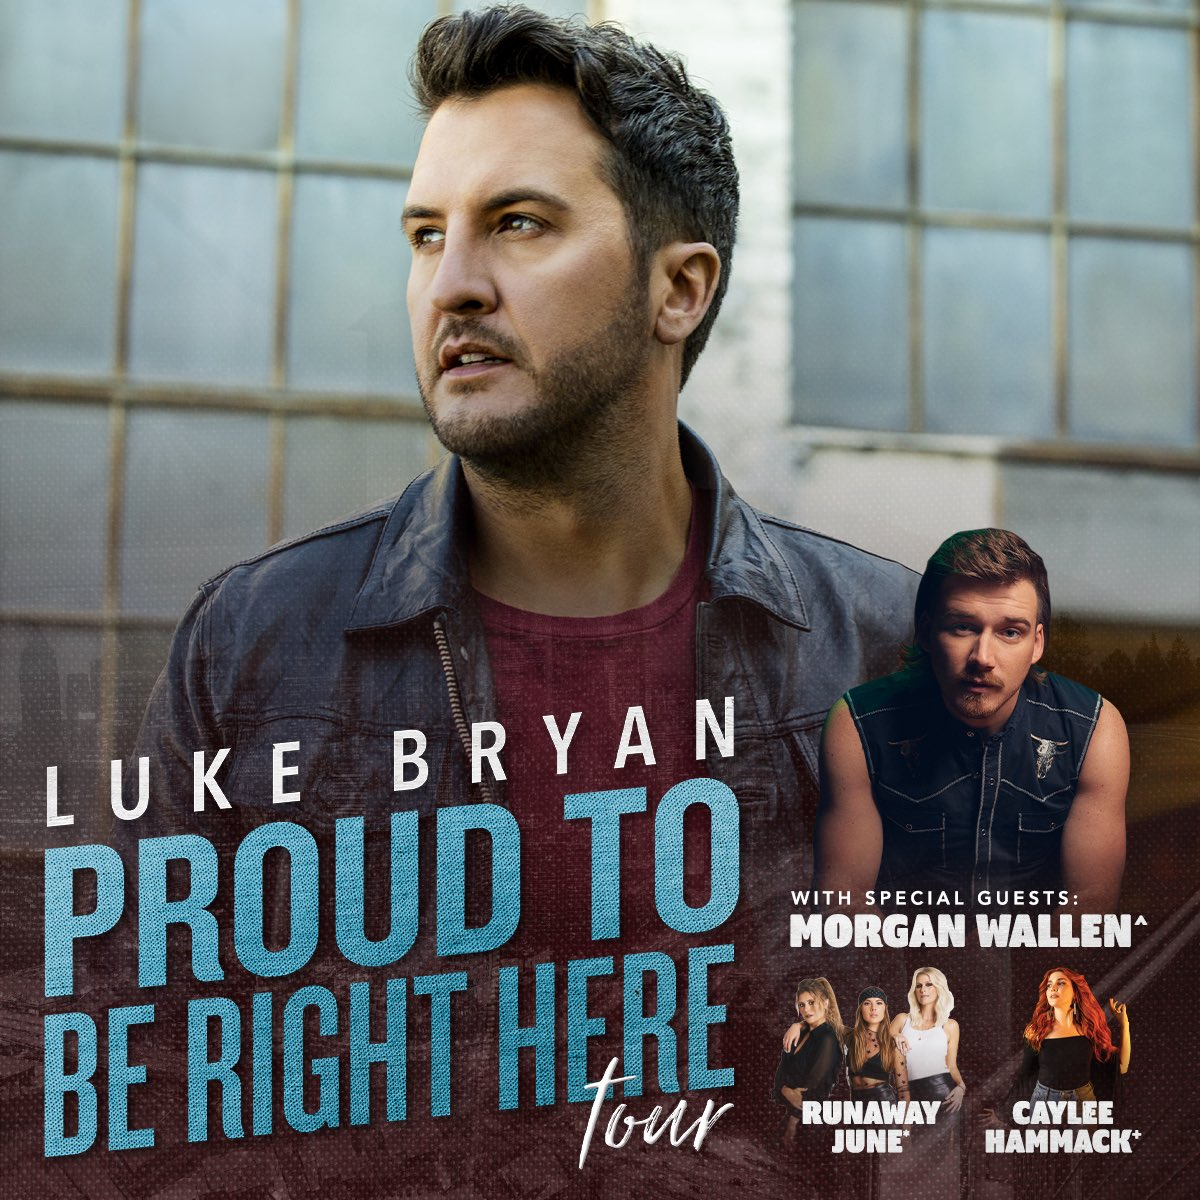 Lucky to call this man a friend. Excited to join @LukeBryanOnline on his #ProudToBeRightHereTour with @runawayjune and @CayleeAnnaMusic. Select dates will go on sale Jan 31! See ya out there.